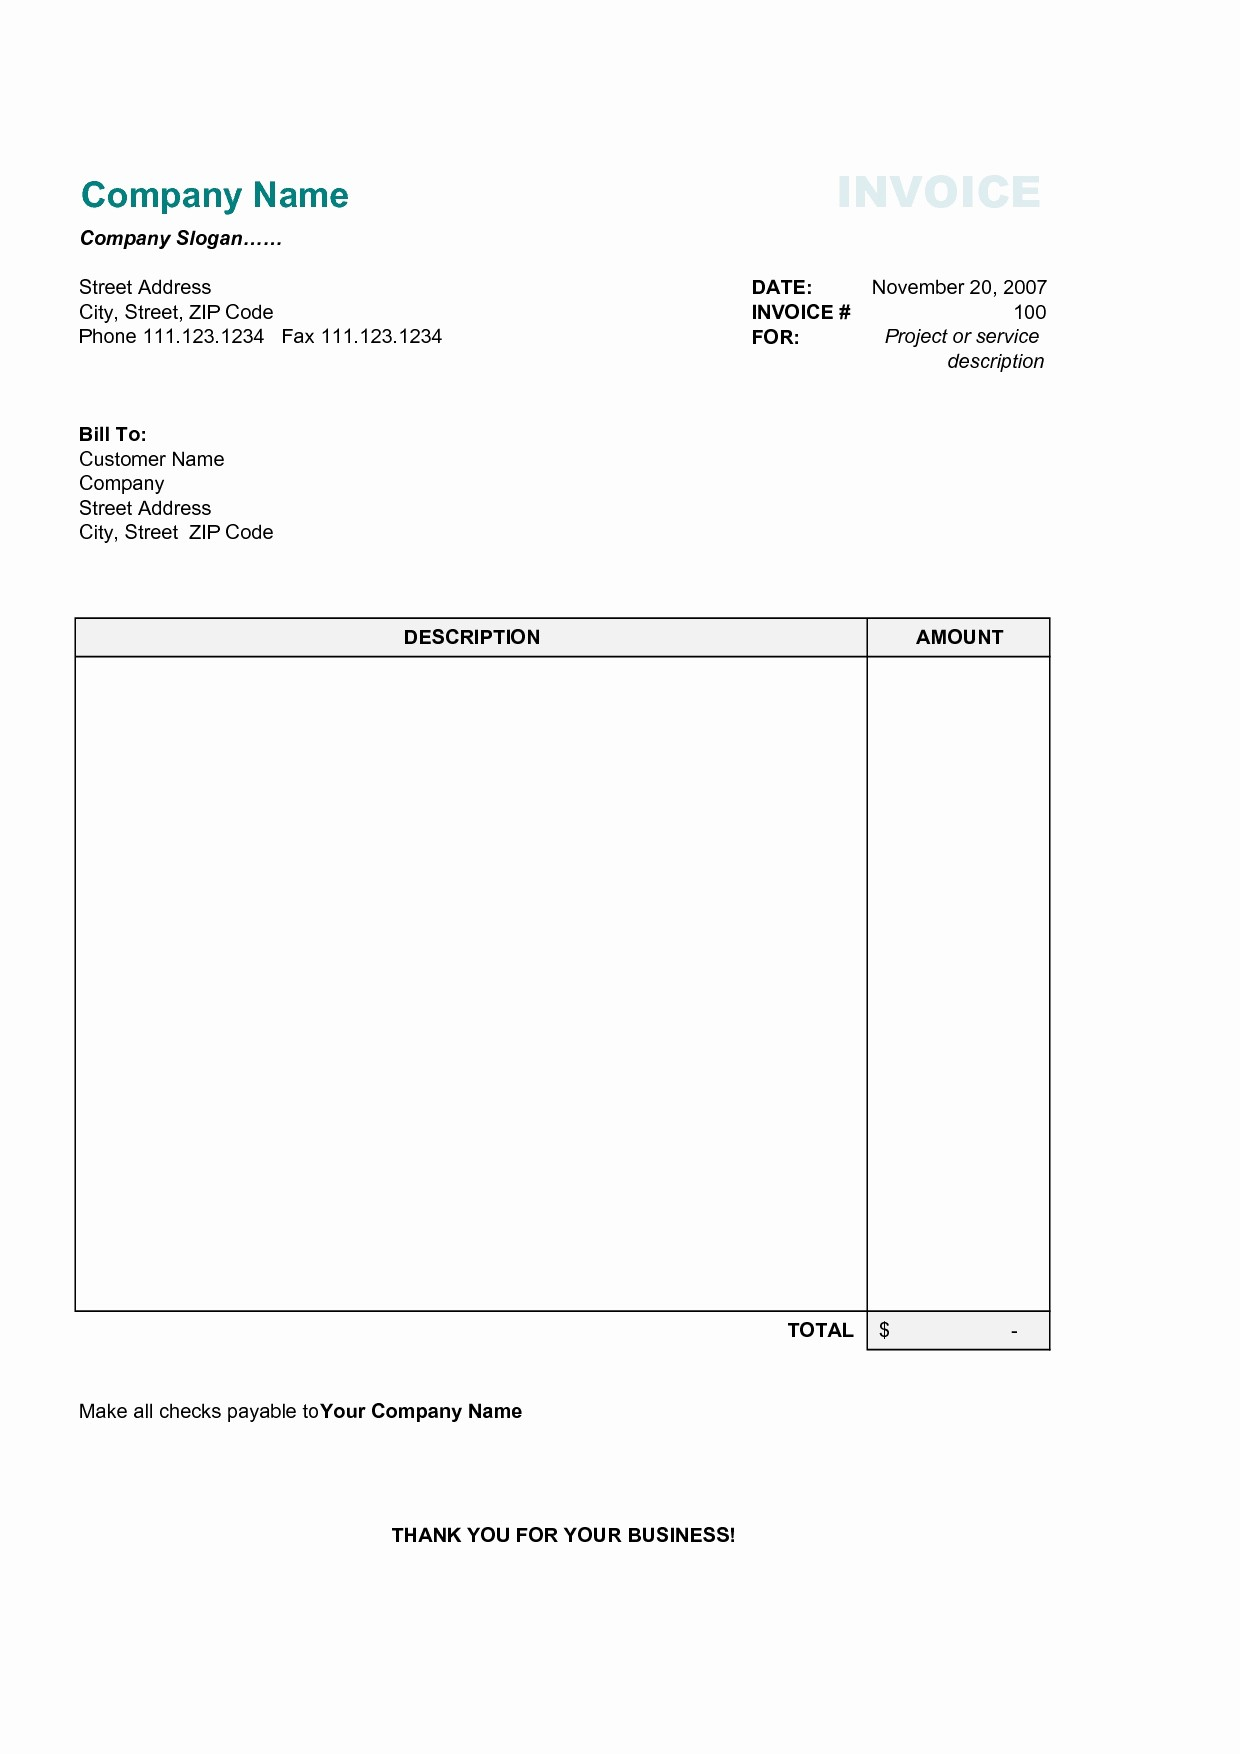 Free Invoice Template for Word Luxury Simple Invoice Template